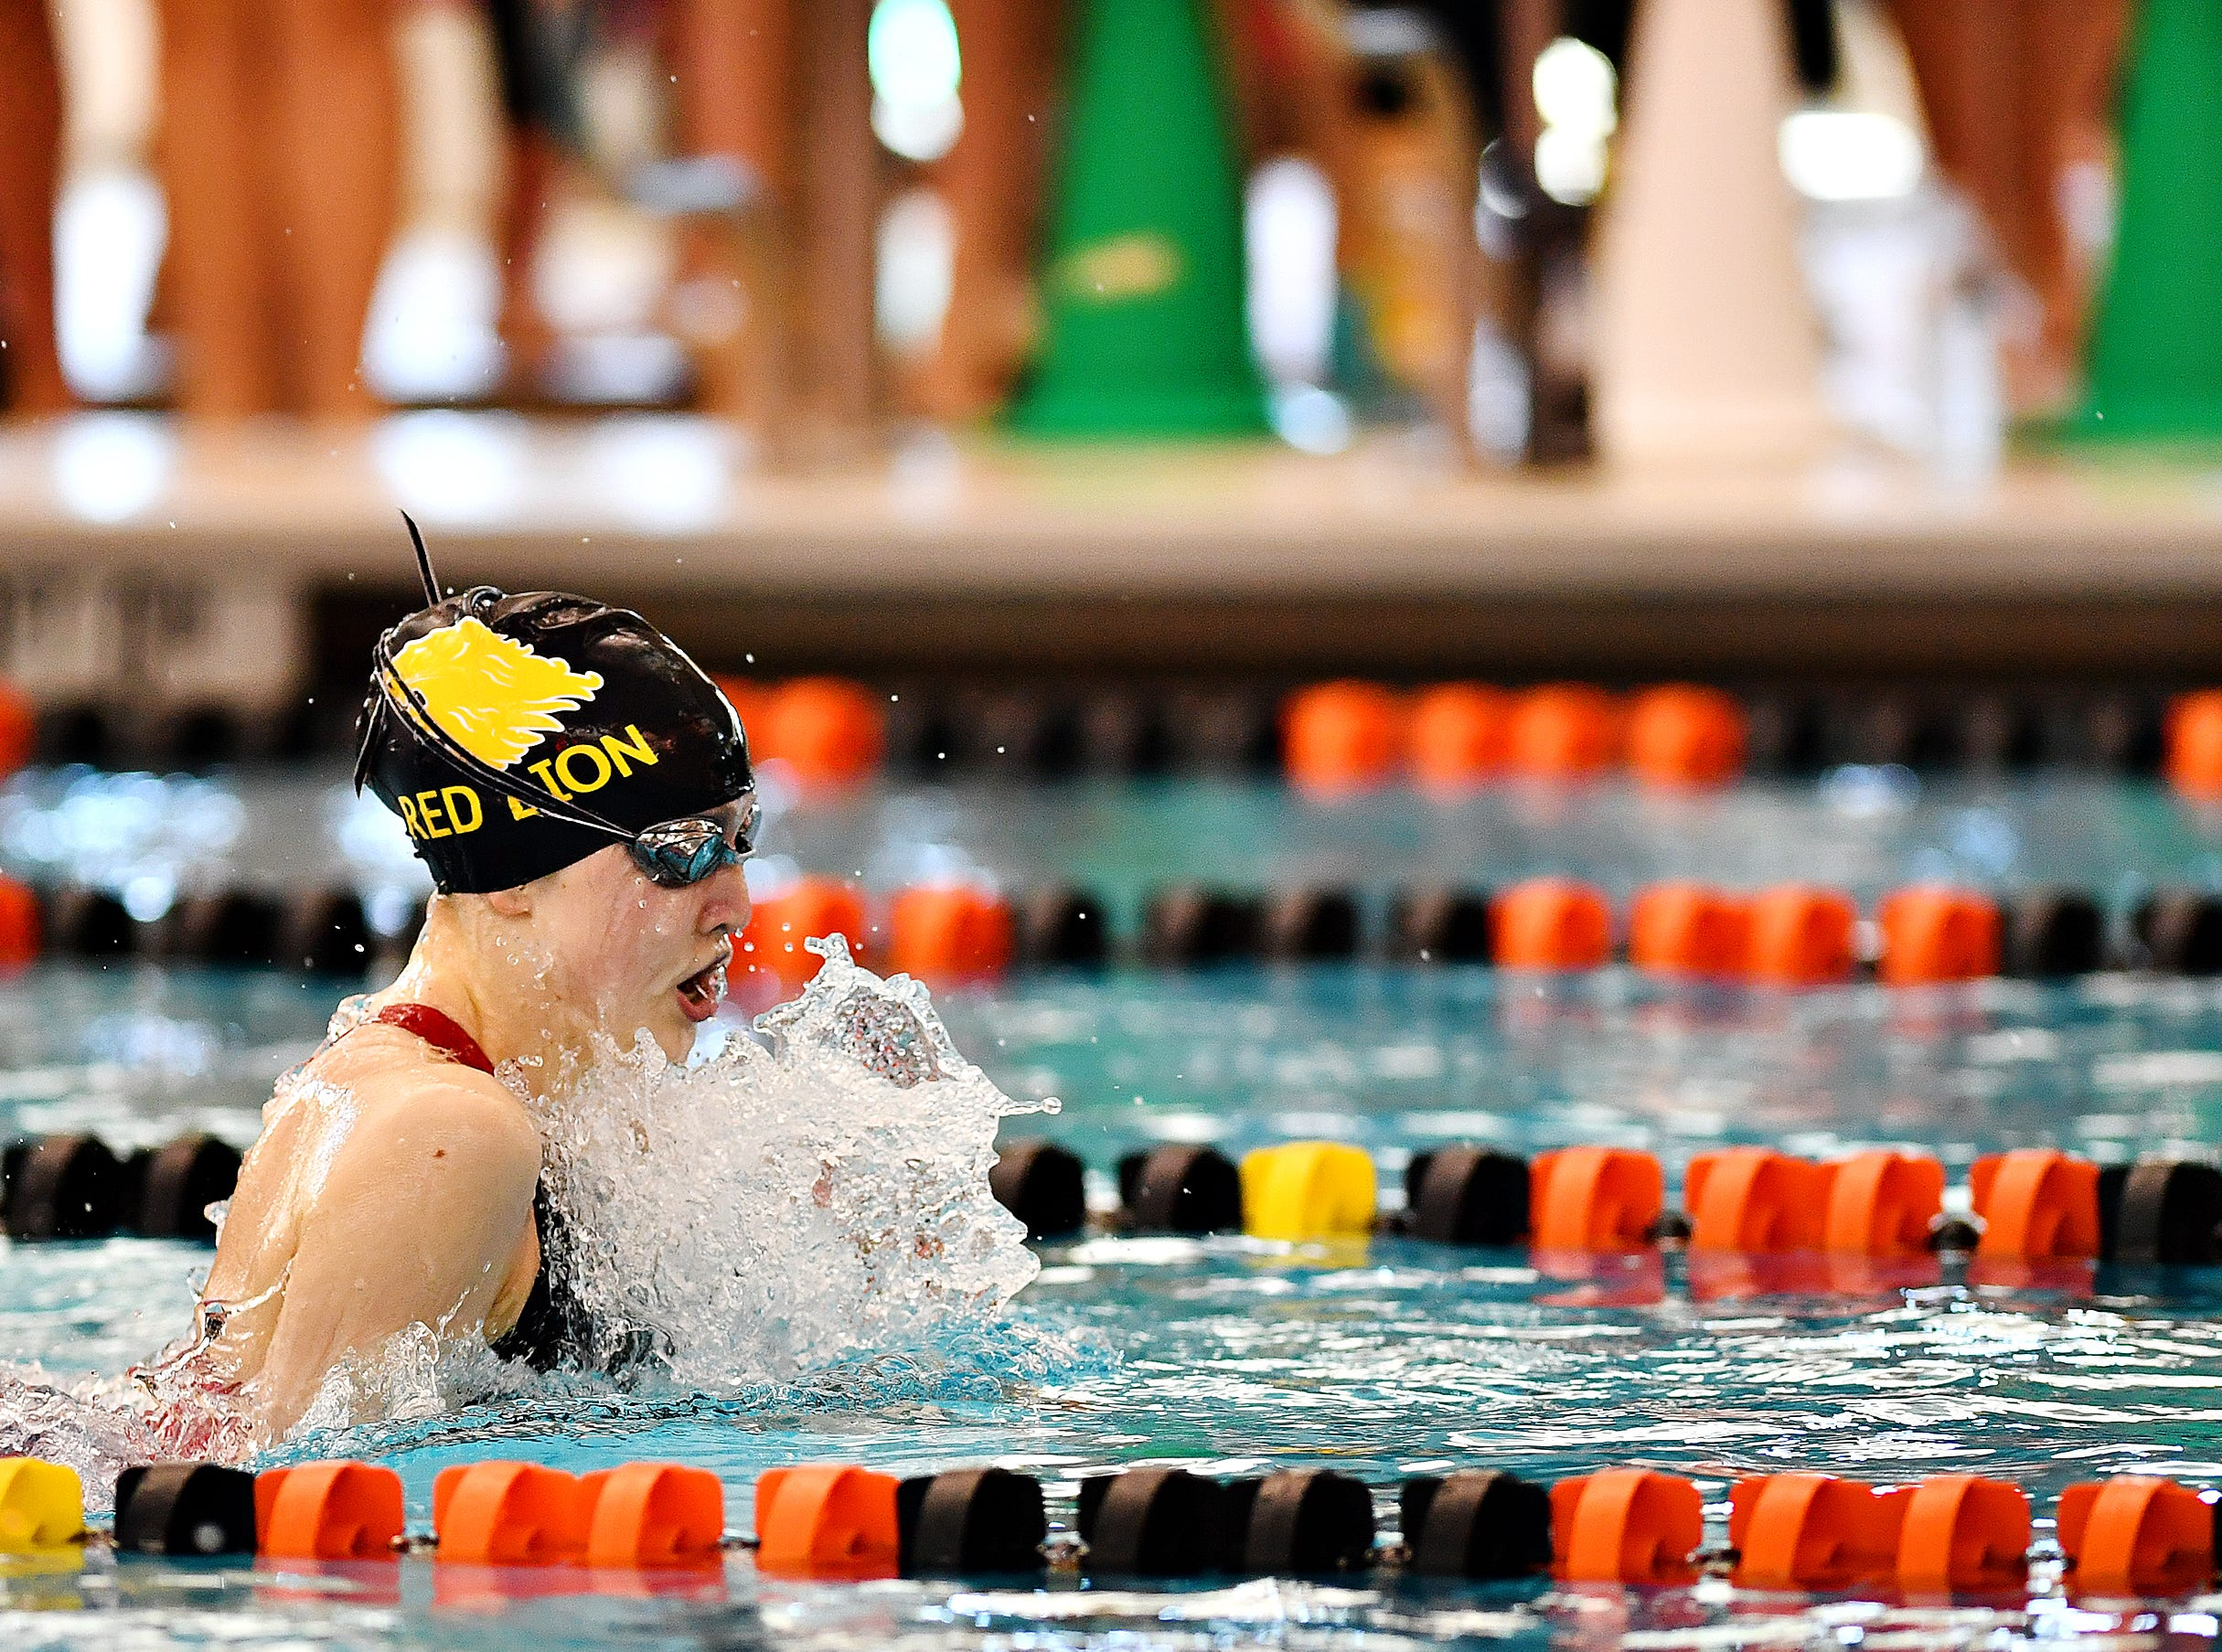 Red Lion's Arabella Butera competes in the 100 Yard Backstroke event during York-Adams League Swimming Championship at Central York High School in Springettsbury Township, Saturday, Feb. 9, 2019. Dawn J. Sagert photo